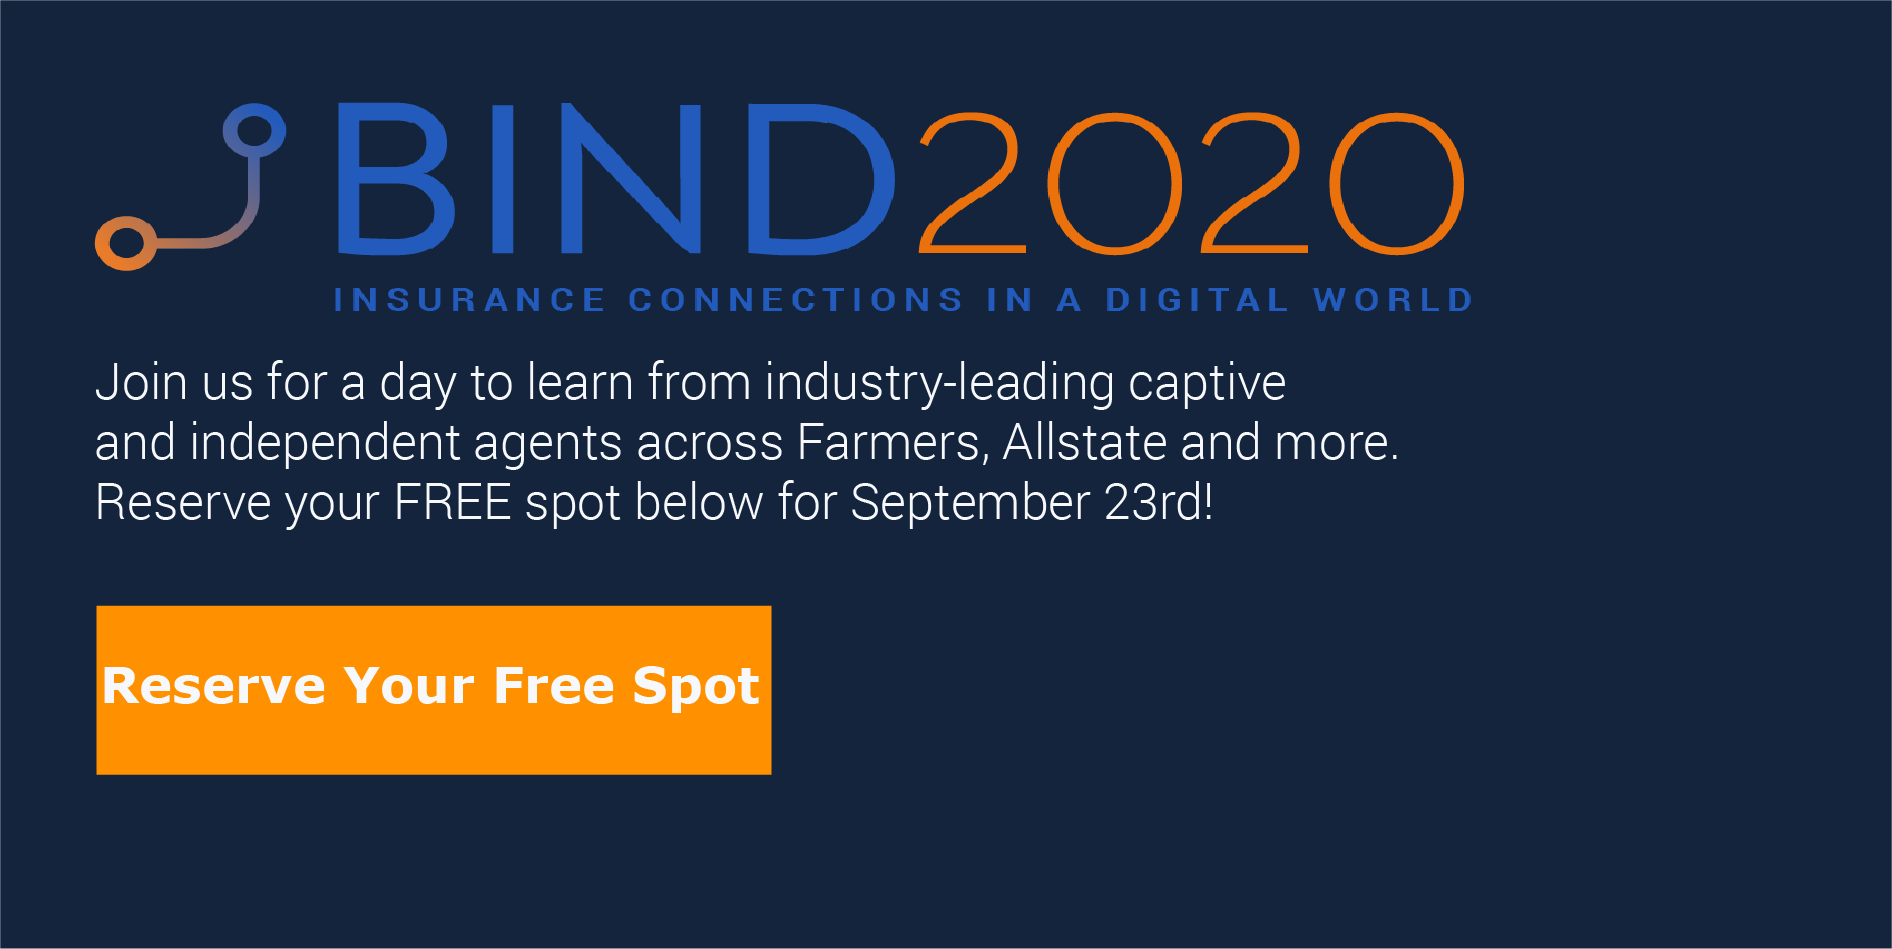 Join EverQuote for a day to learn from industry-leading captive and independent agents across Farmers, Allstate and more. Reserve your FREE spot below for September 23rd!